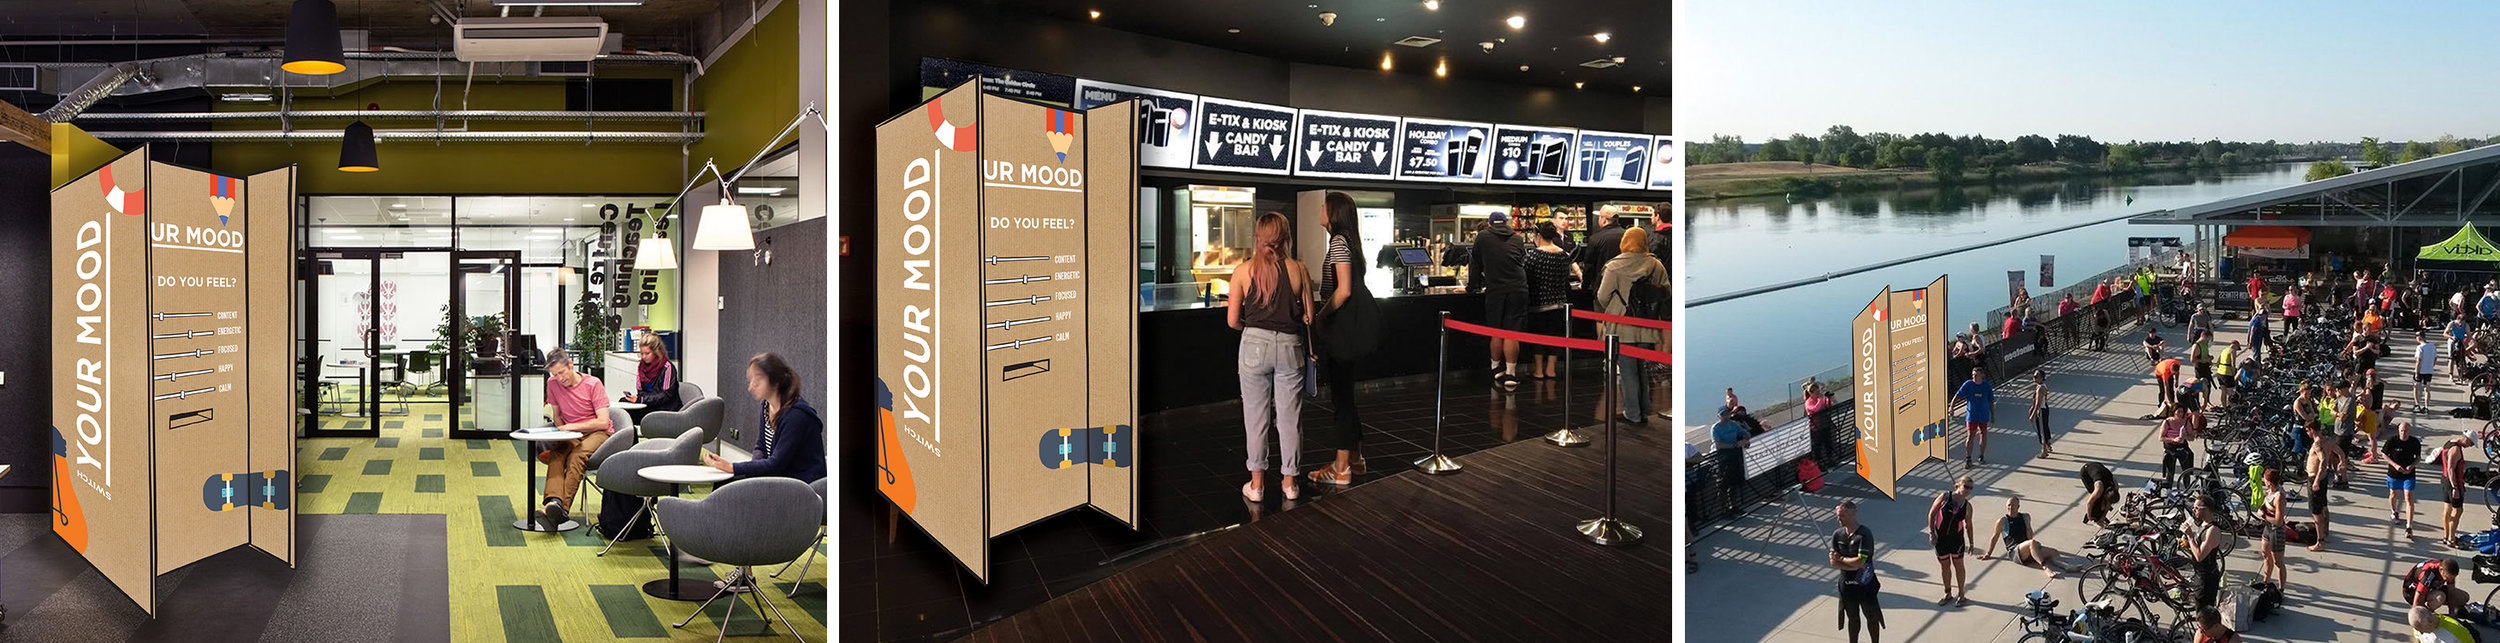 The Switch Booth set up in locations such as a marathon to push the 'Energise' flavour, or the cinemas for the 'Indulge' flavour.